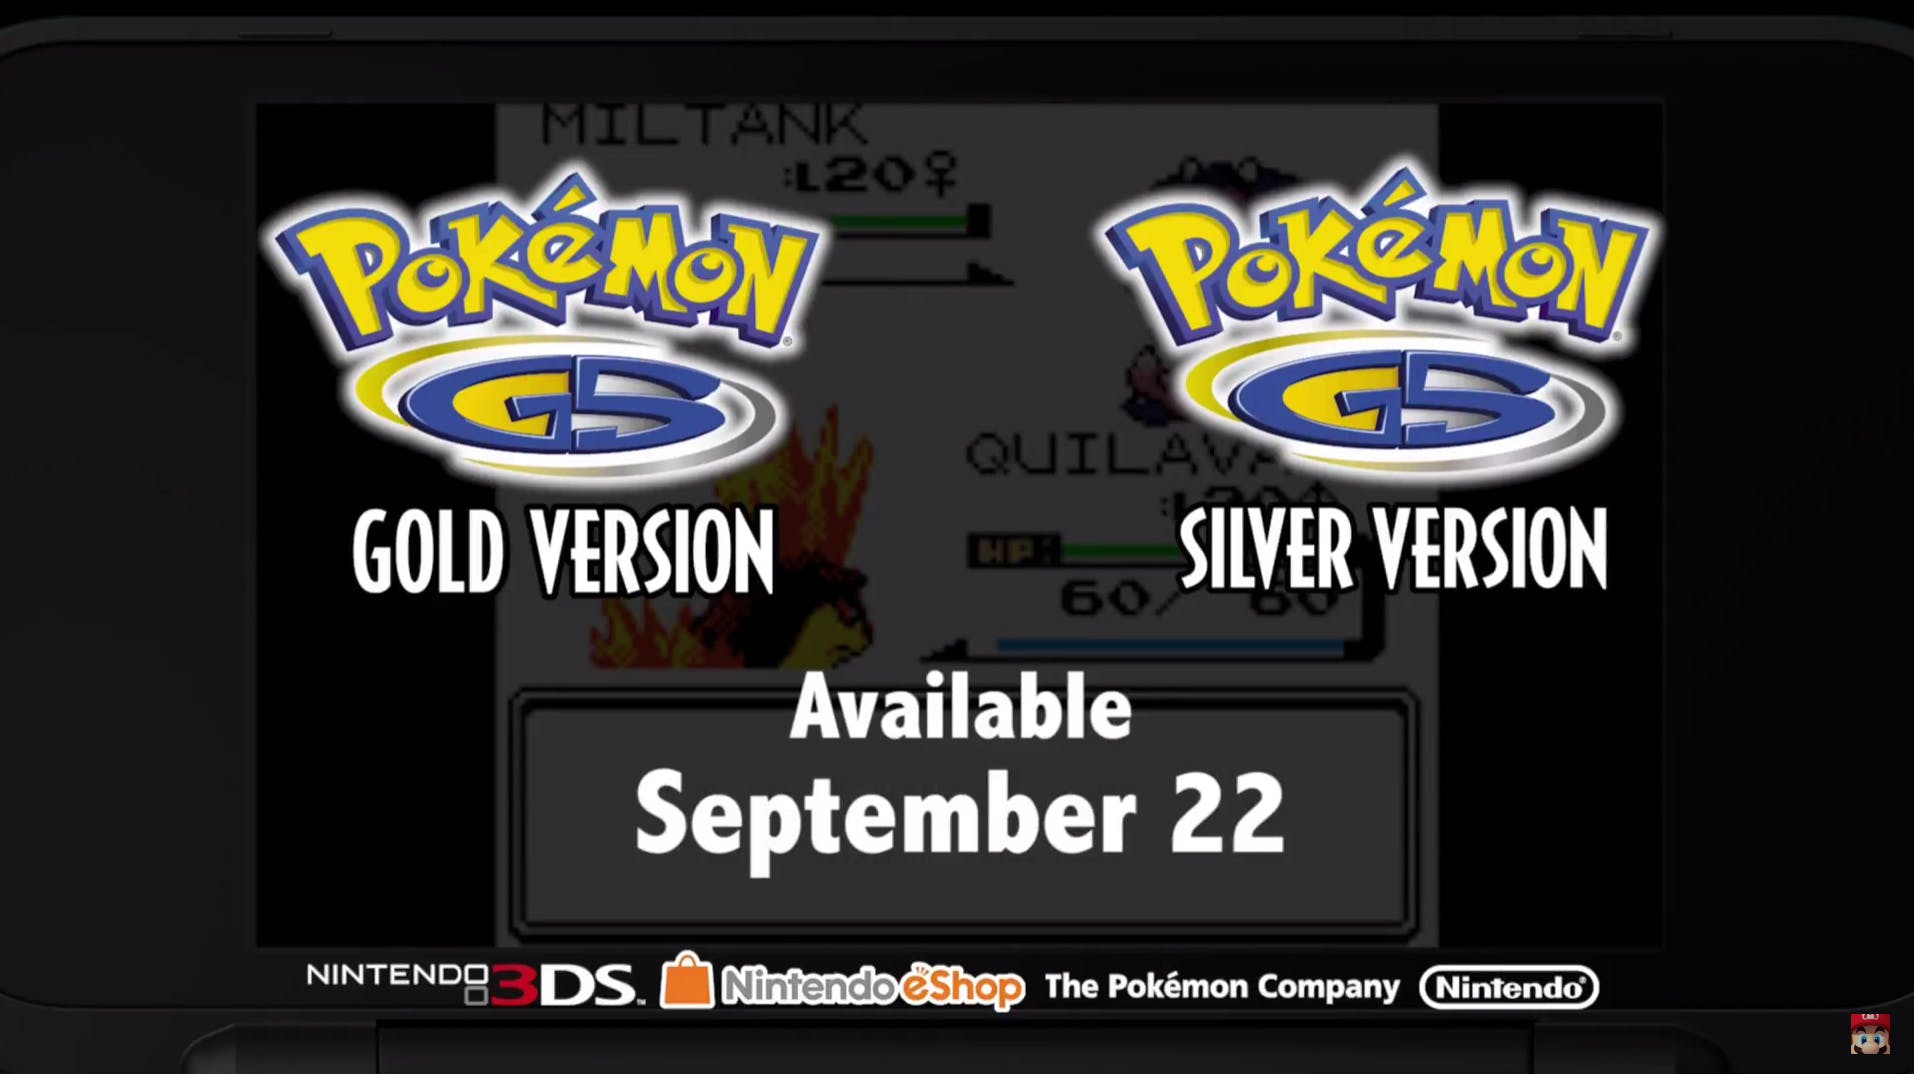 Pokémon Gold and Silver versions on the Virtual Console